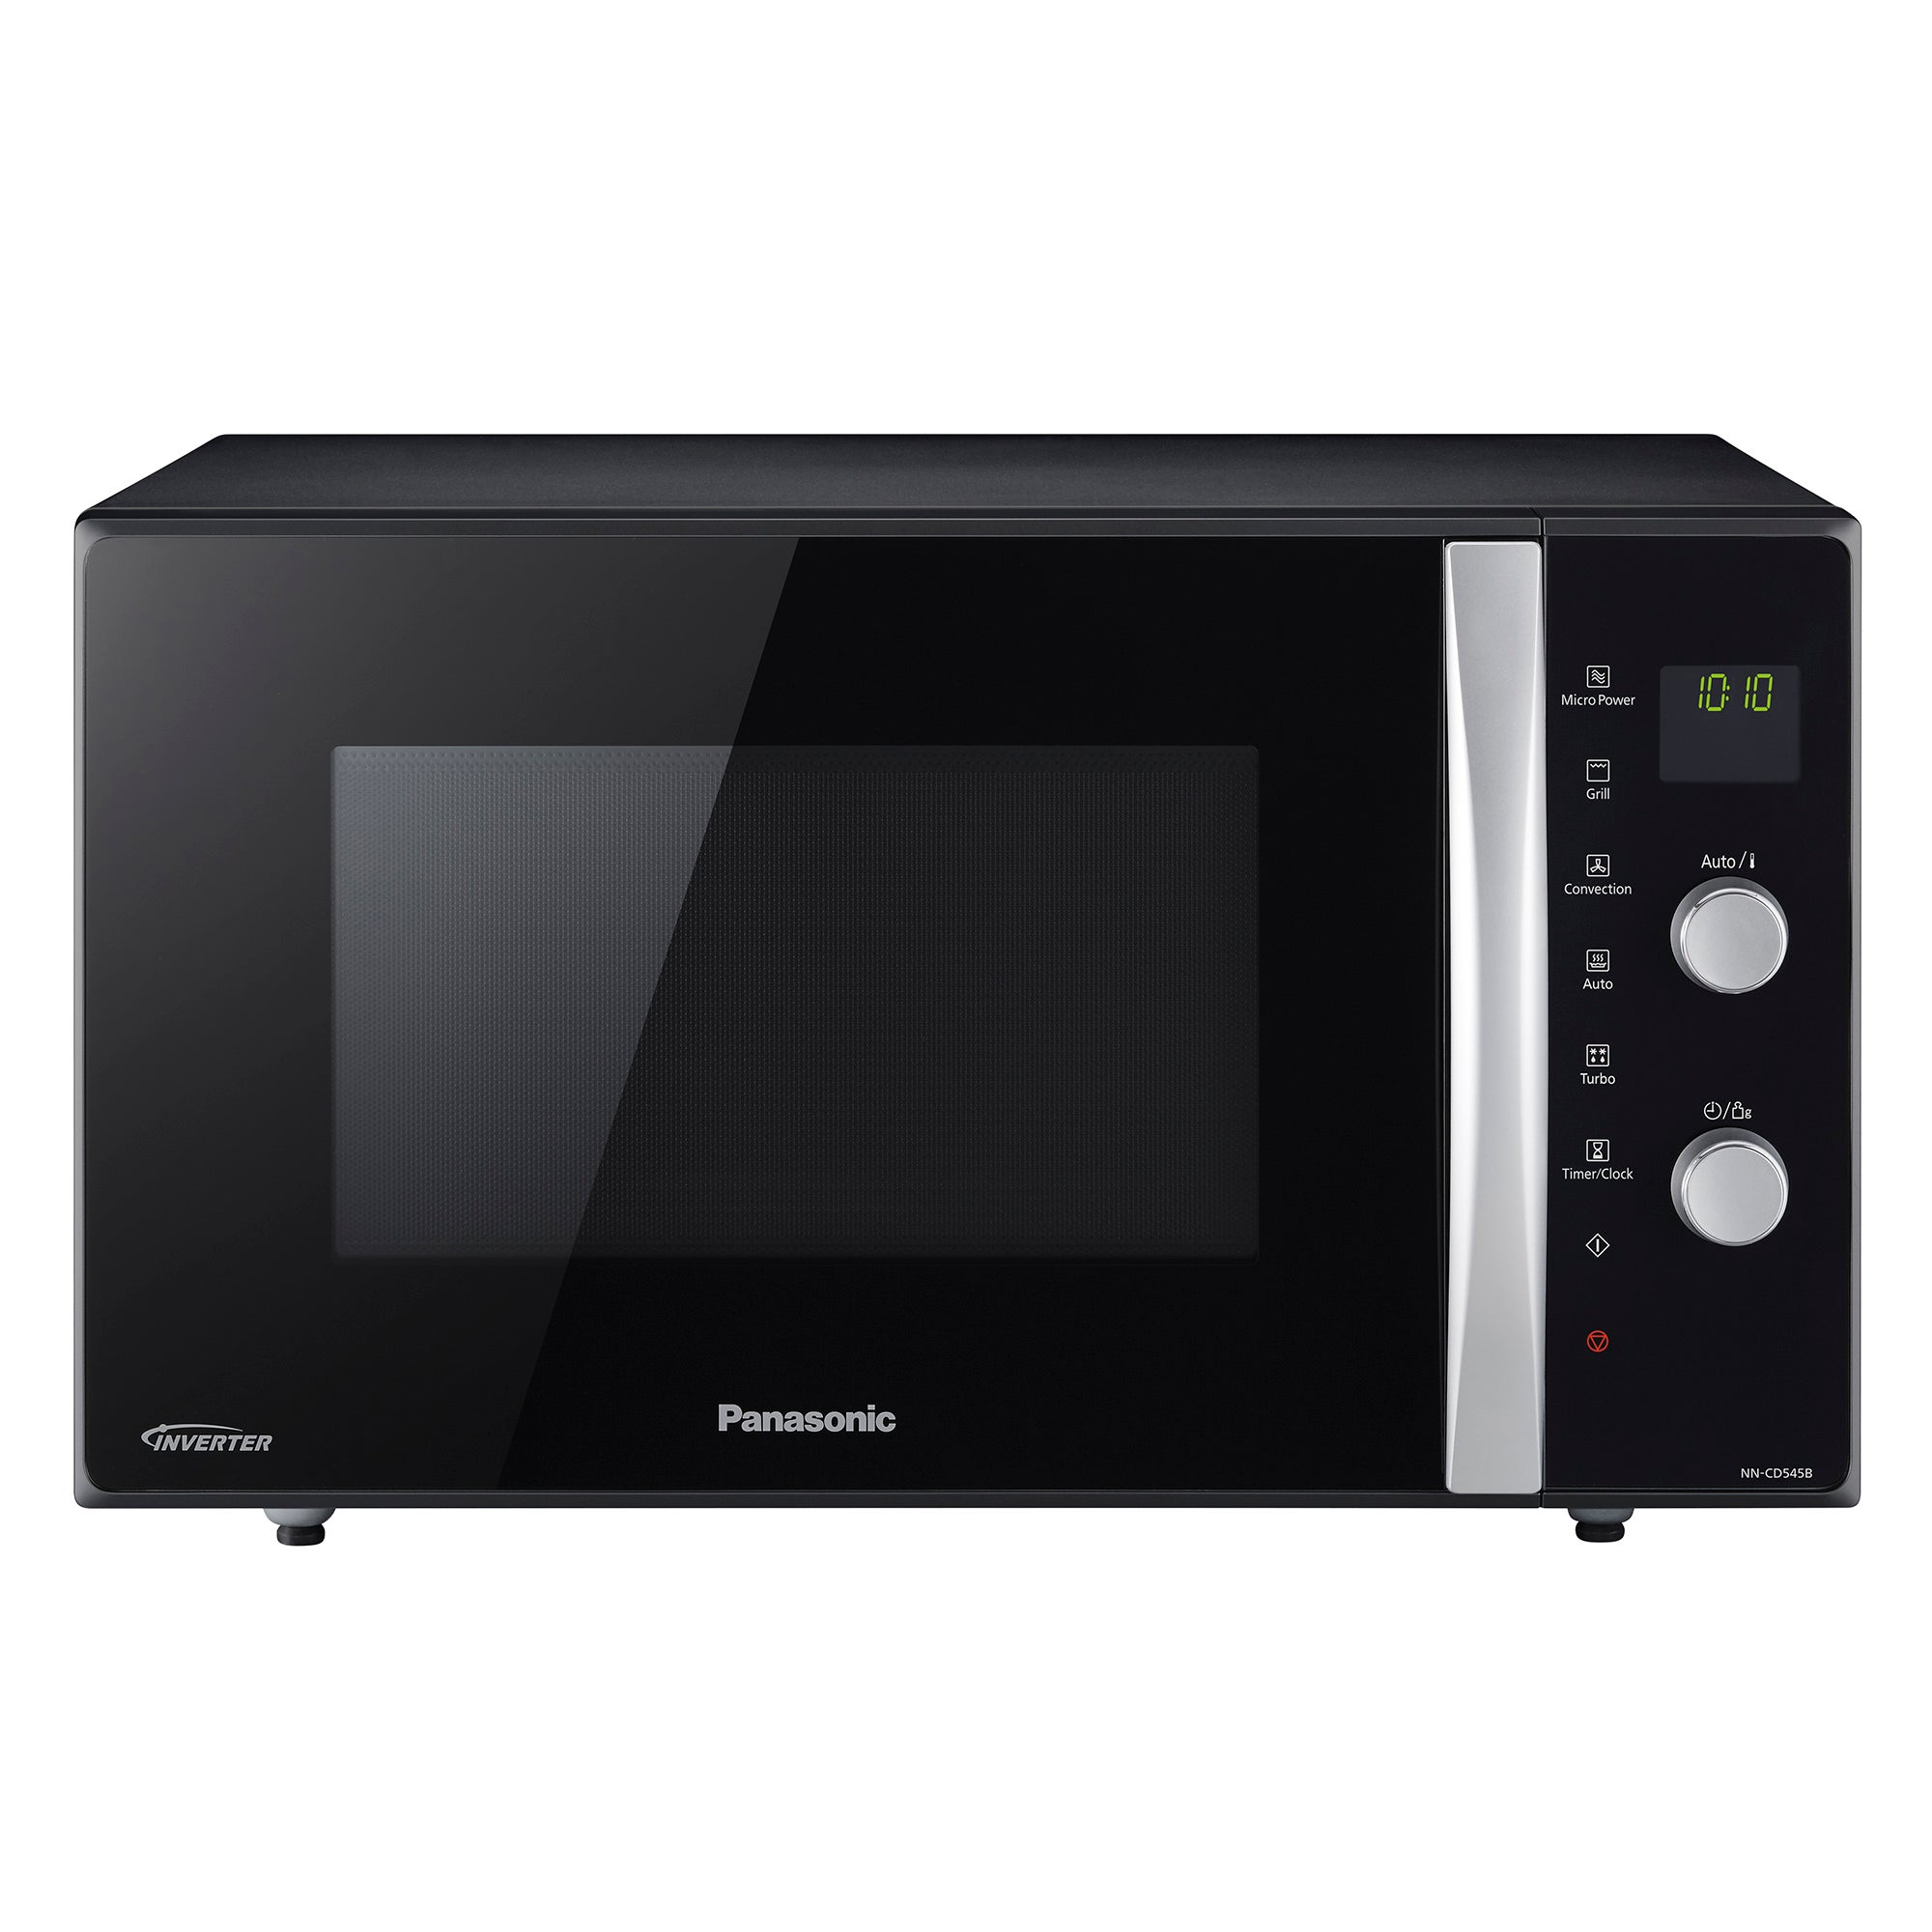 Panasonic NNCD545BBPQ Black 3 in 1 Combination Microwave Oven with Grill Black